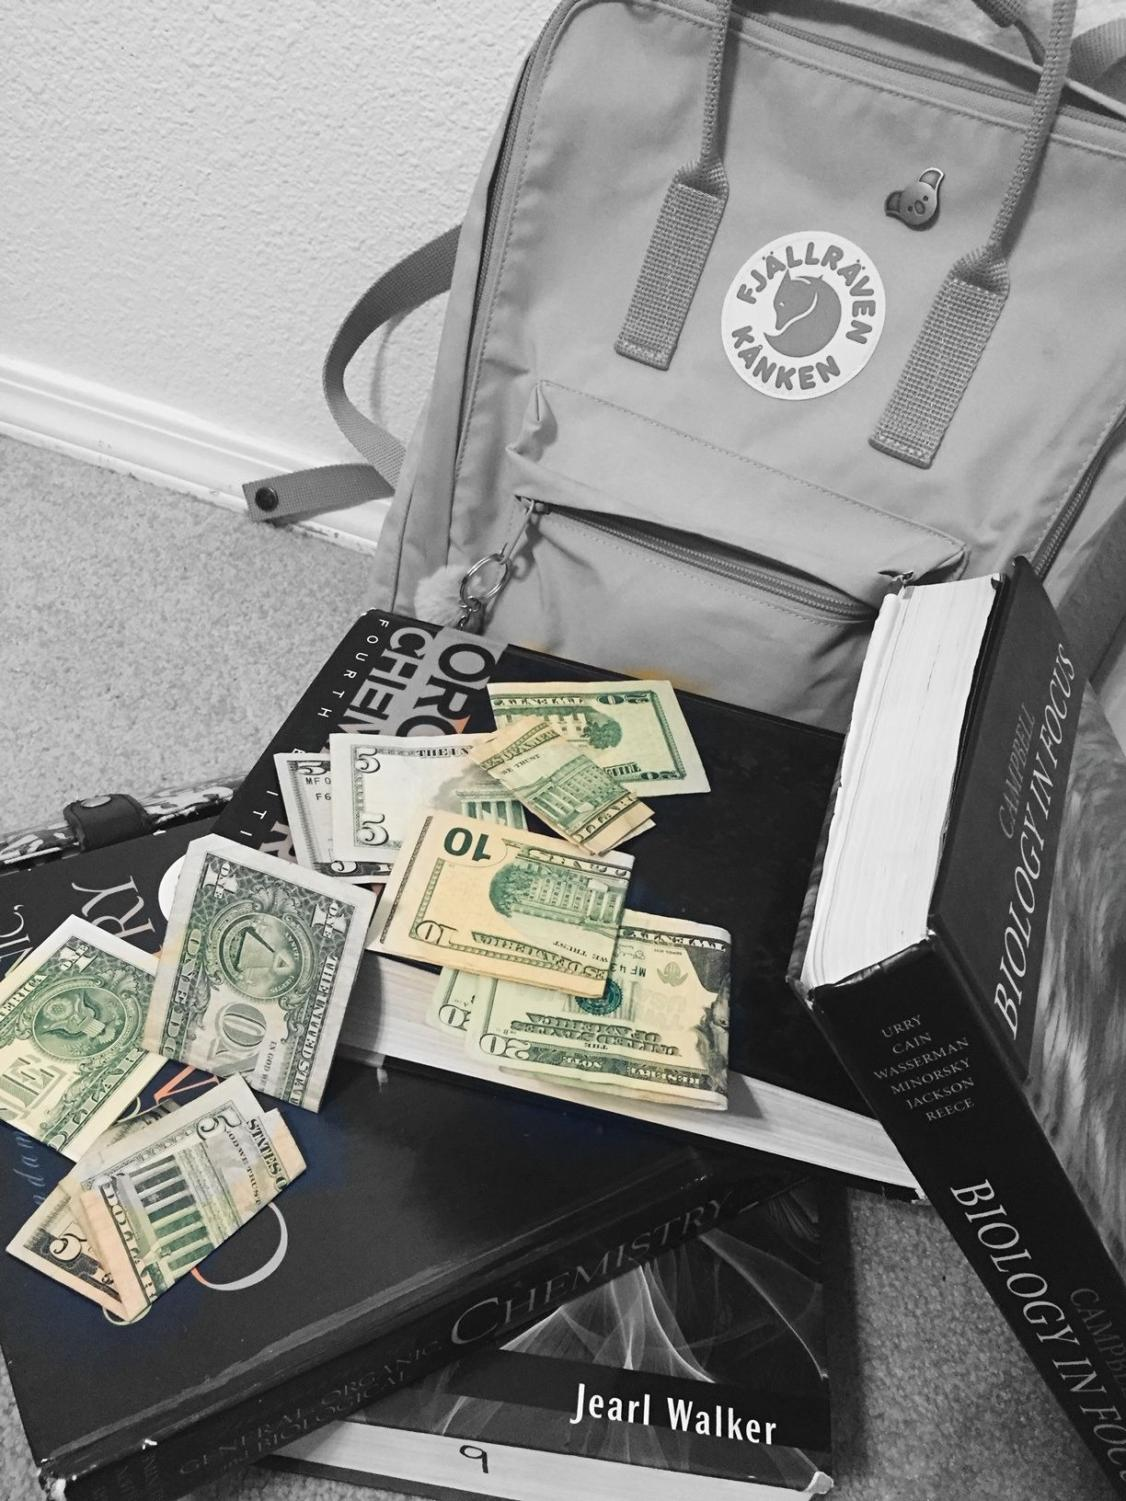 The necessities for college: a backpack, textbooks and a lot of cash.